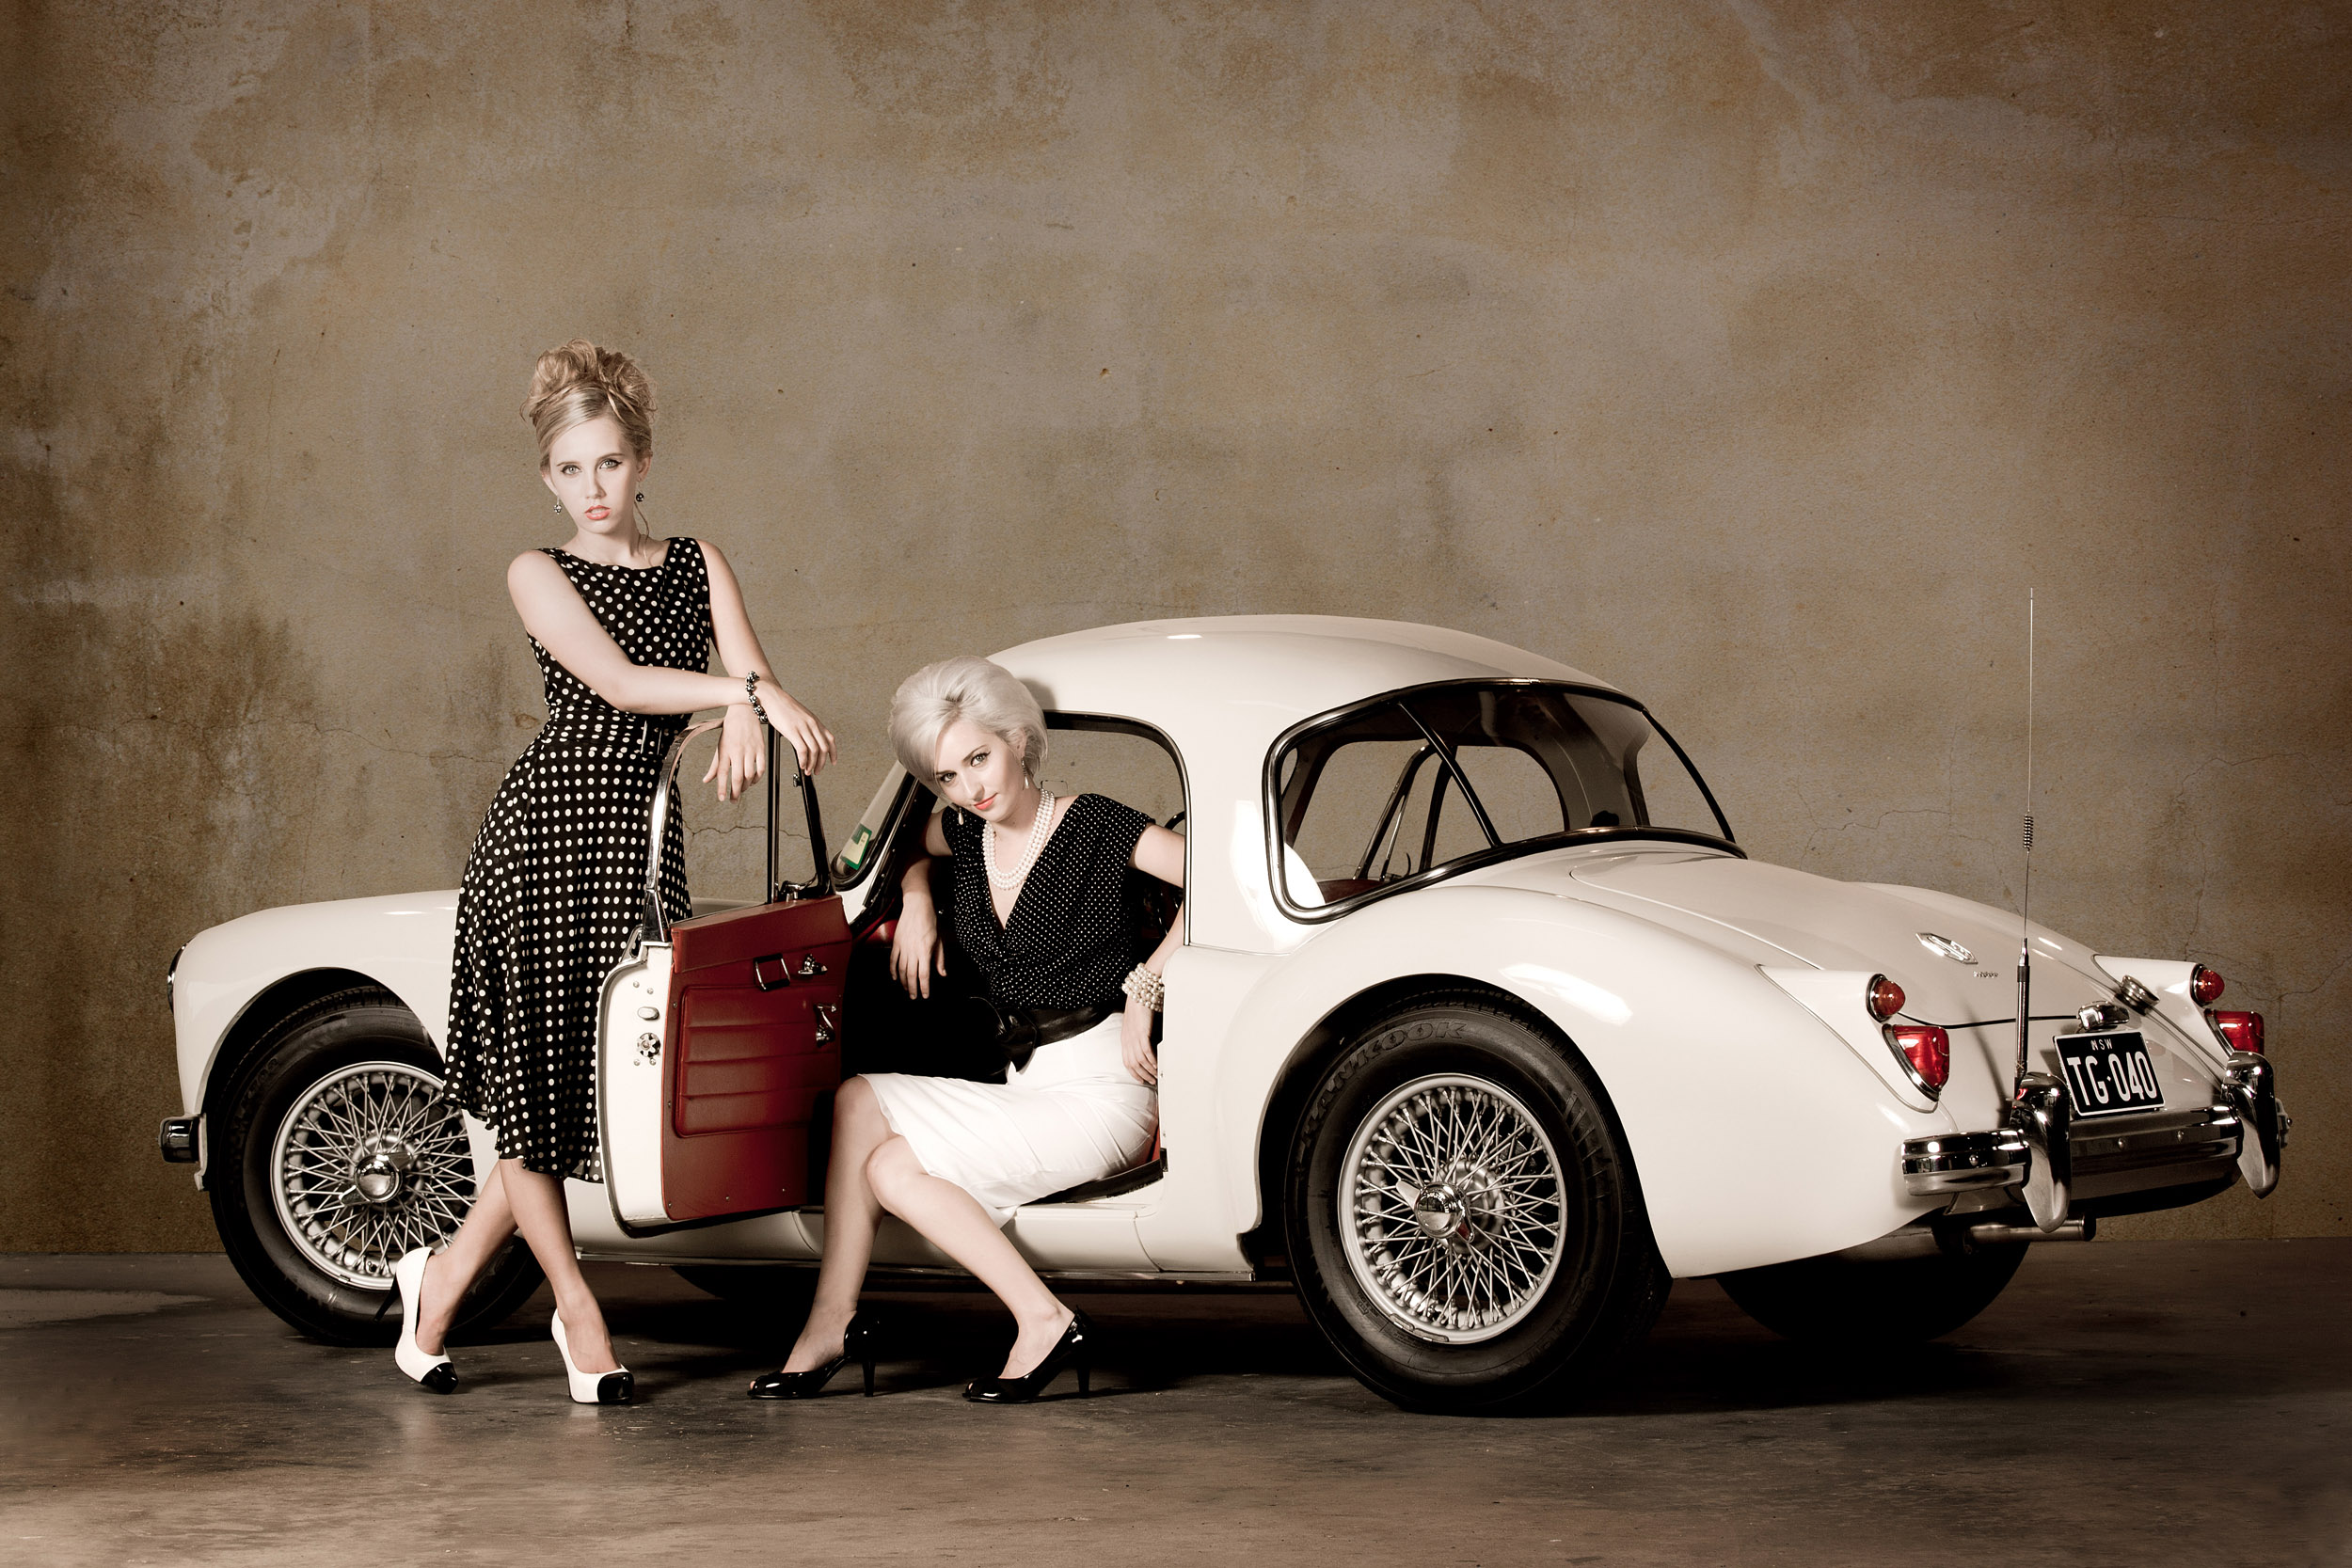 1950s-MG-car-photoshoot.jpg